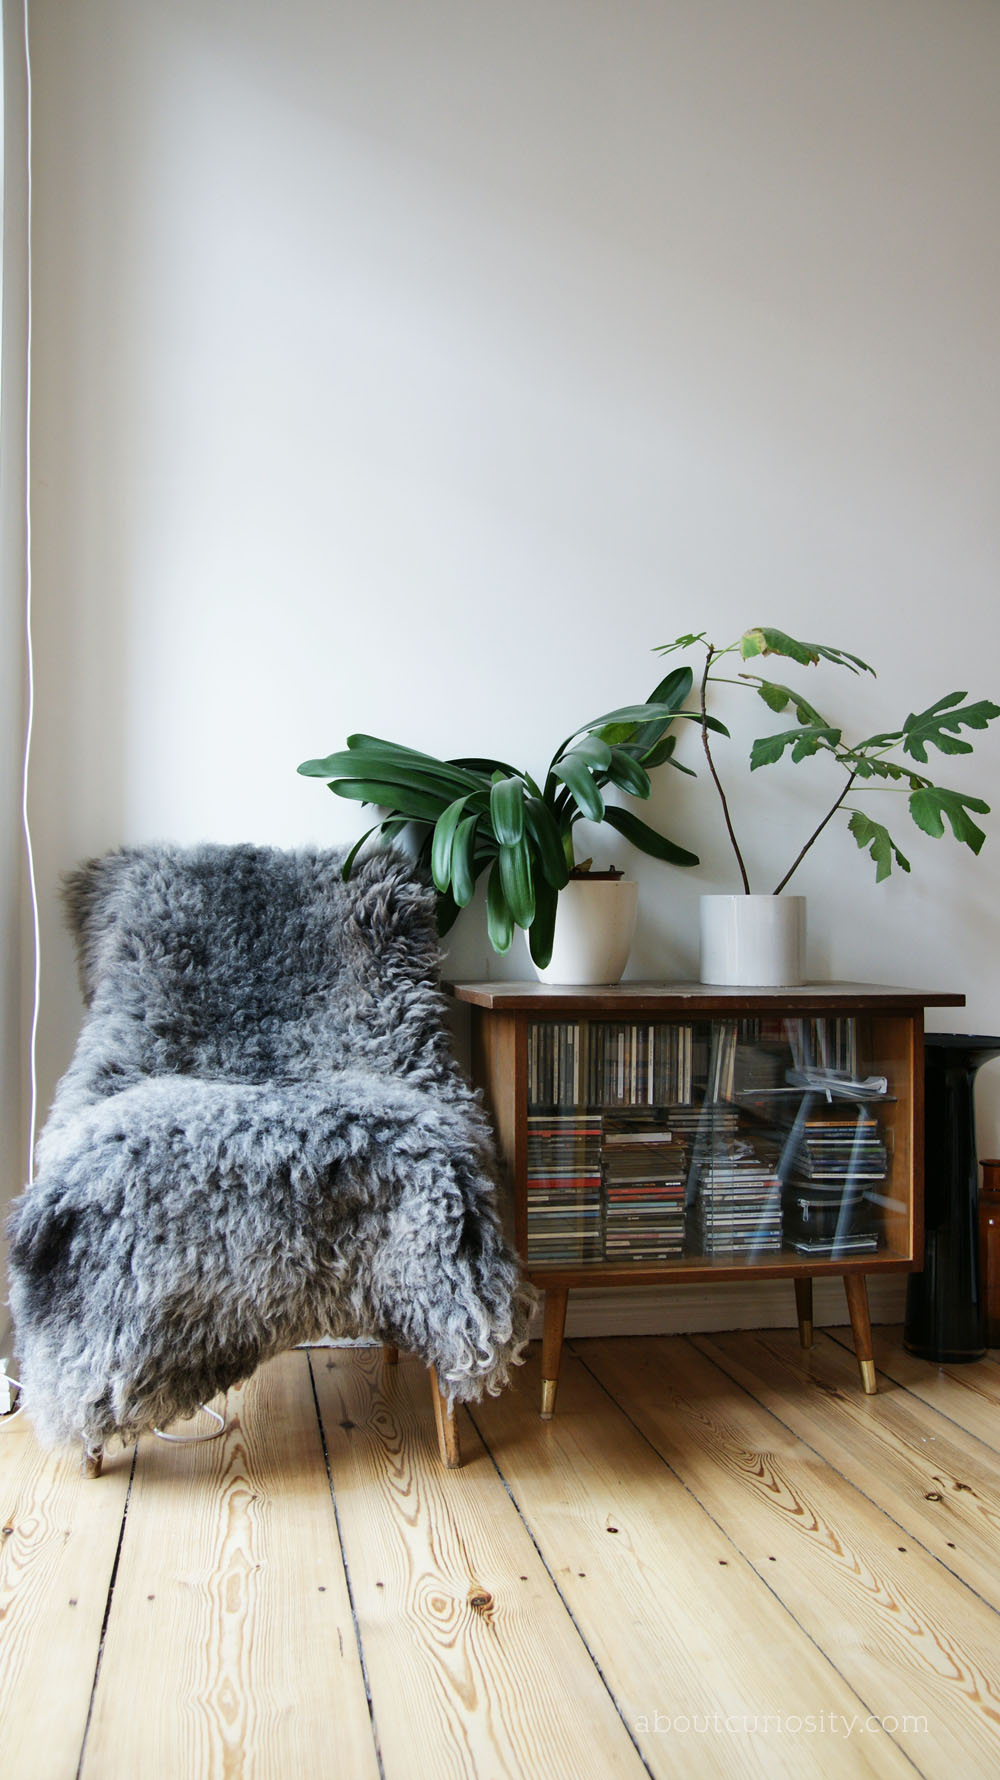 Scandinavian Vintage Design with Fur